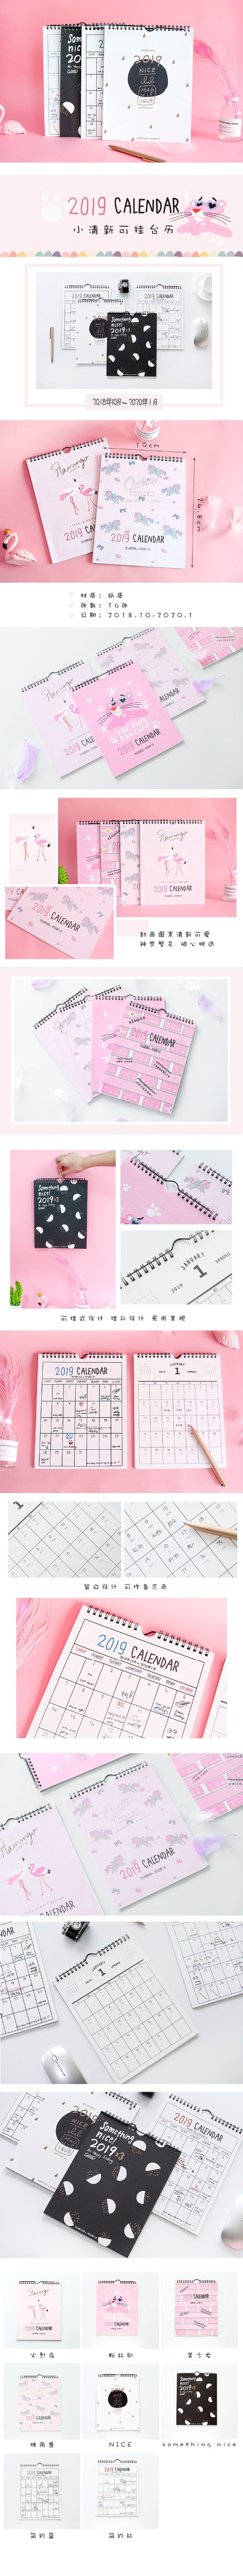 Office & School Supplies Calendar 1 Piece 24.8cm Big Size 2019 Flamingo Calendar Office Stationery Desk Notebook Holiday Promotion Gift Girls Birthday Gift